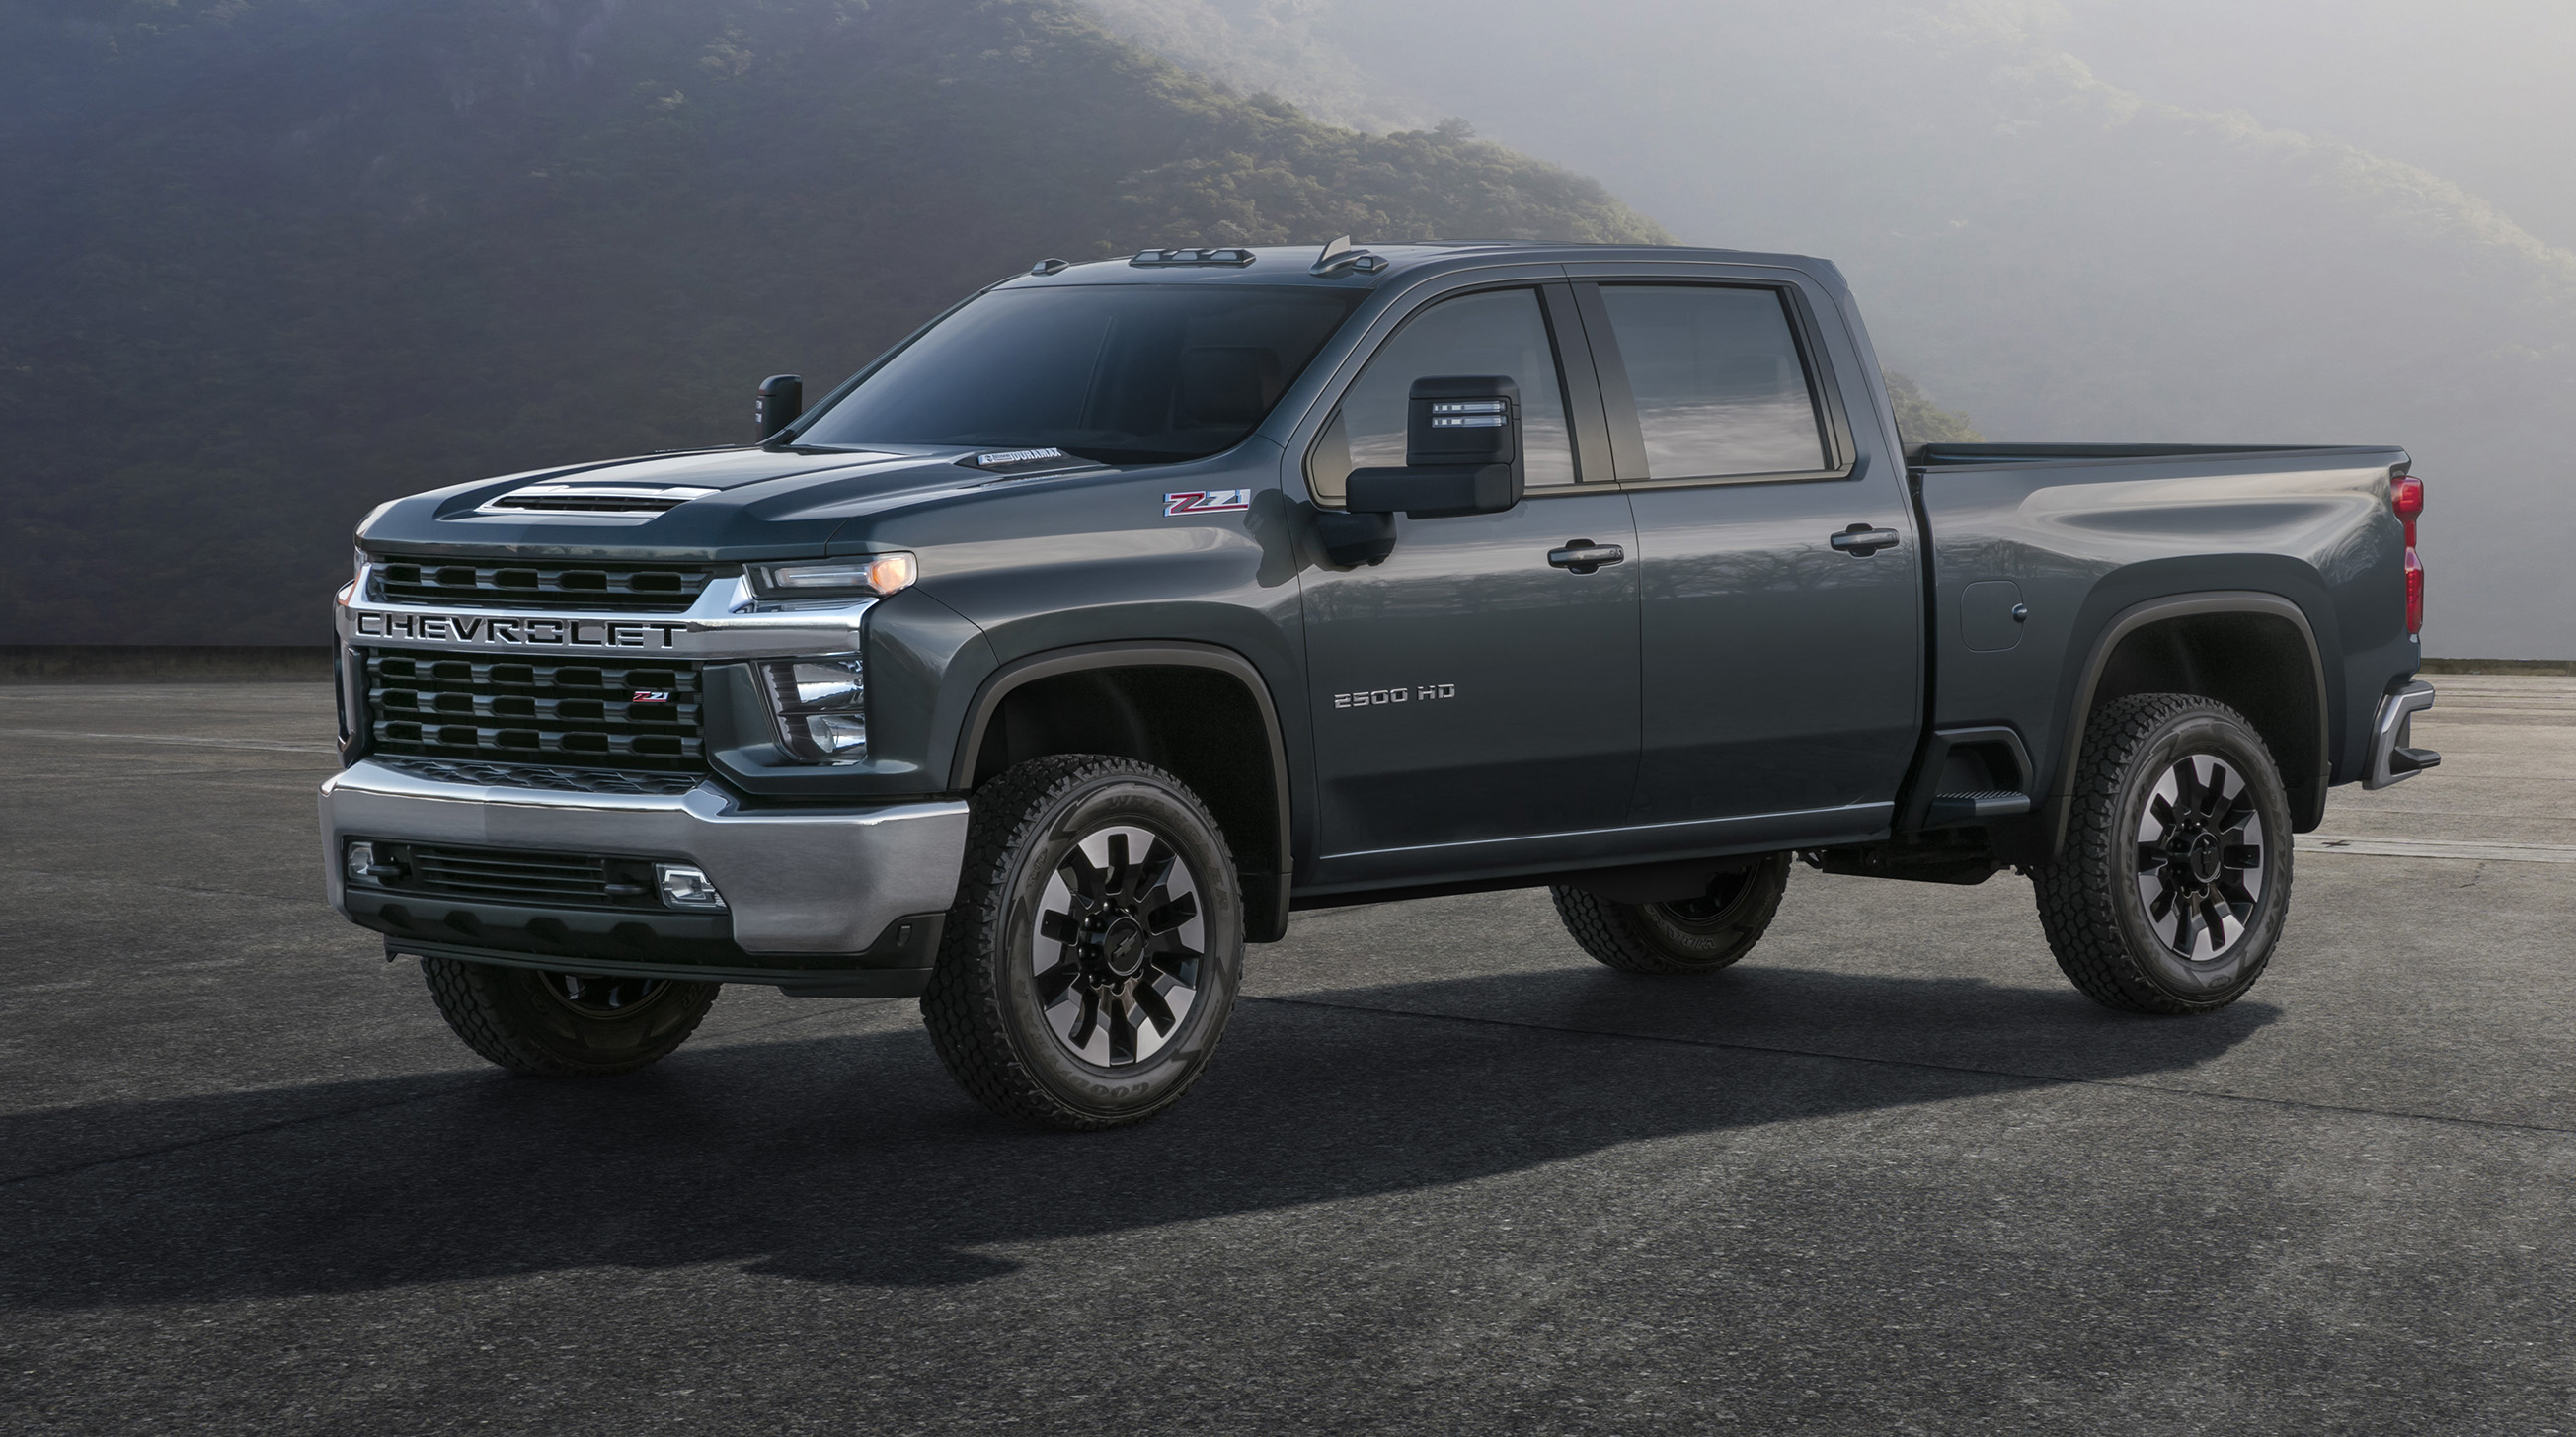 Chevrolet introduces newly redesigned 2020 Silverado HD